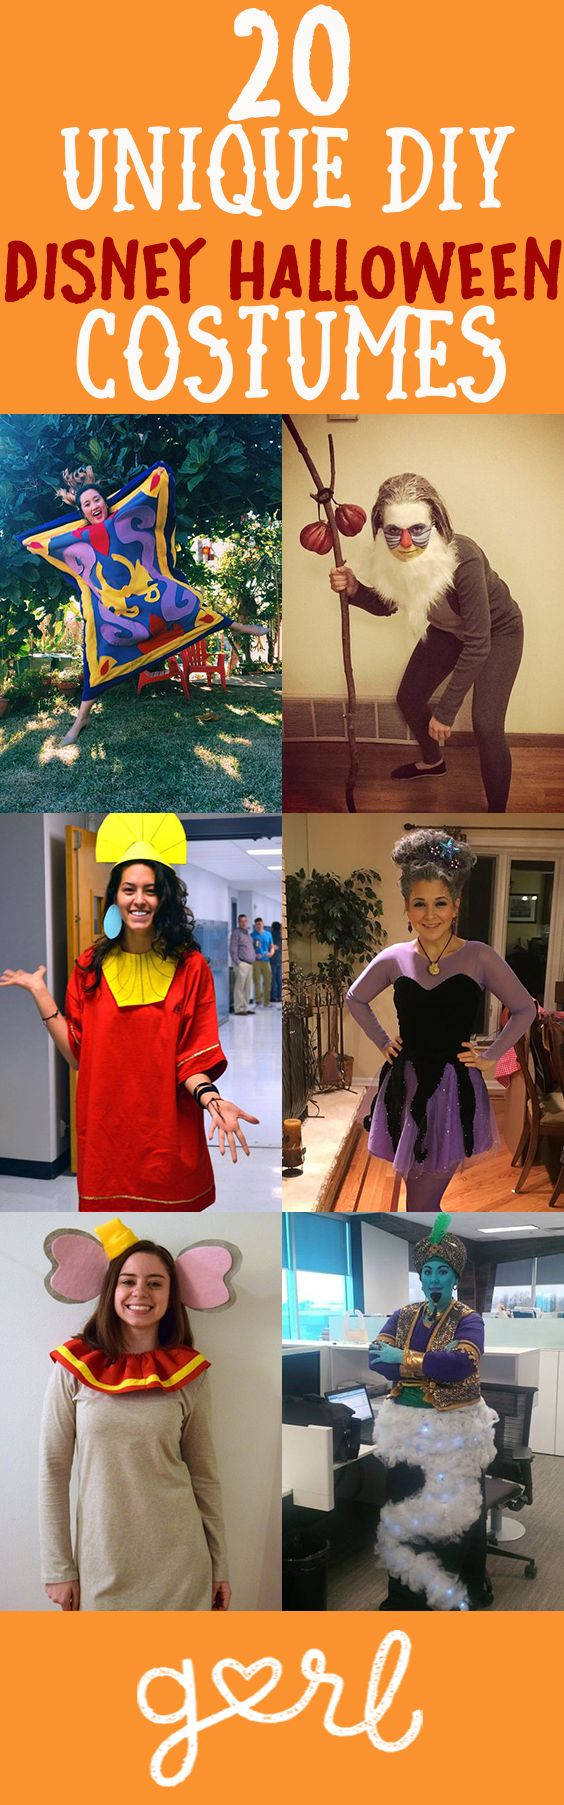 20 Unique DIY Disney Halloween Costumes You Haven't ...